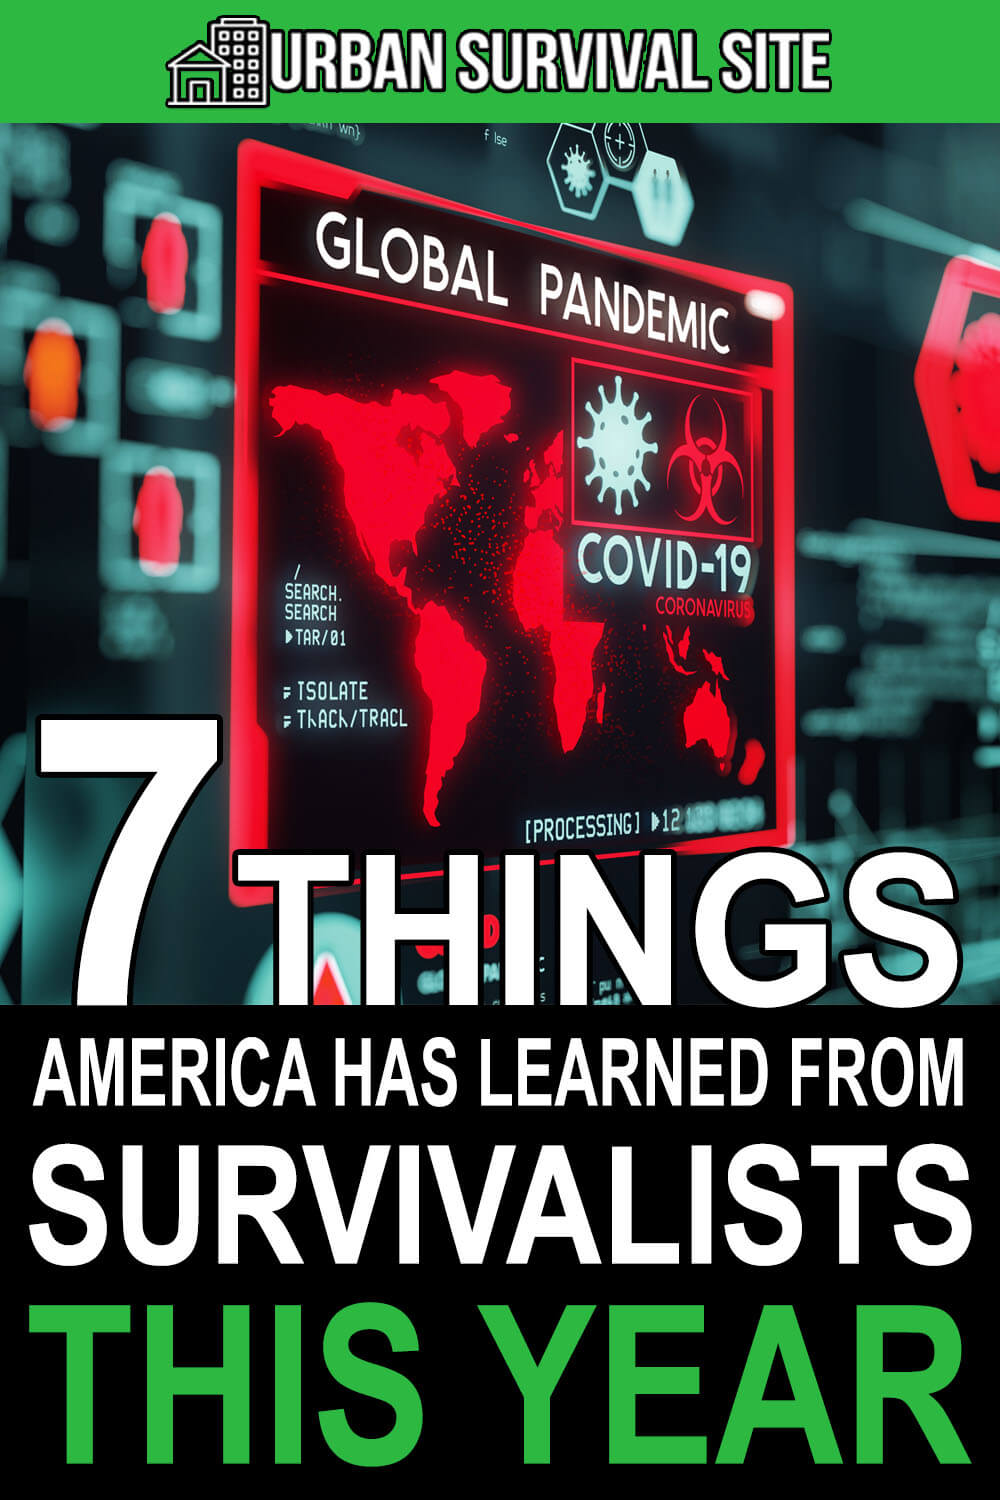 7 Things America Has Learn From Survivalists This Year